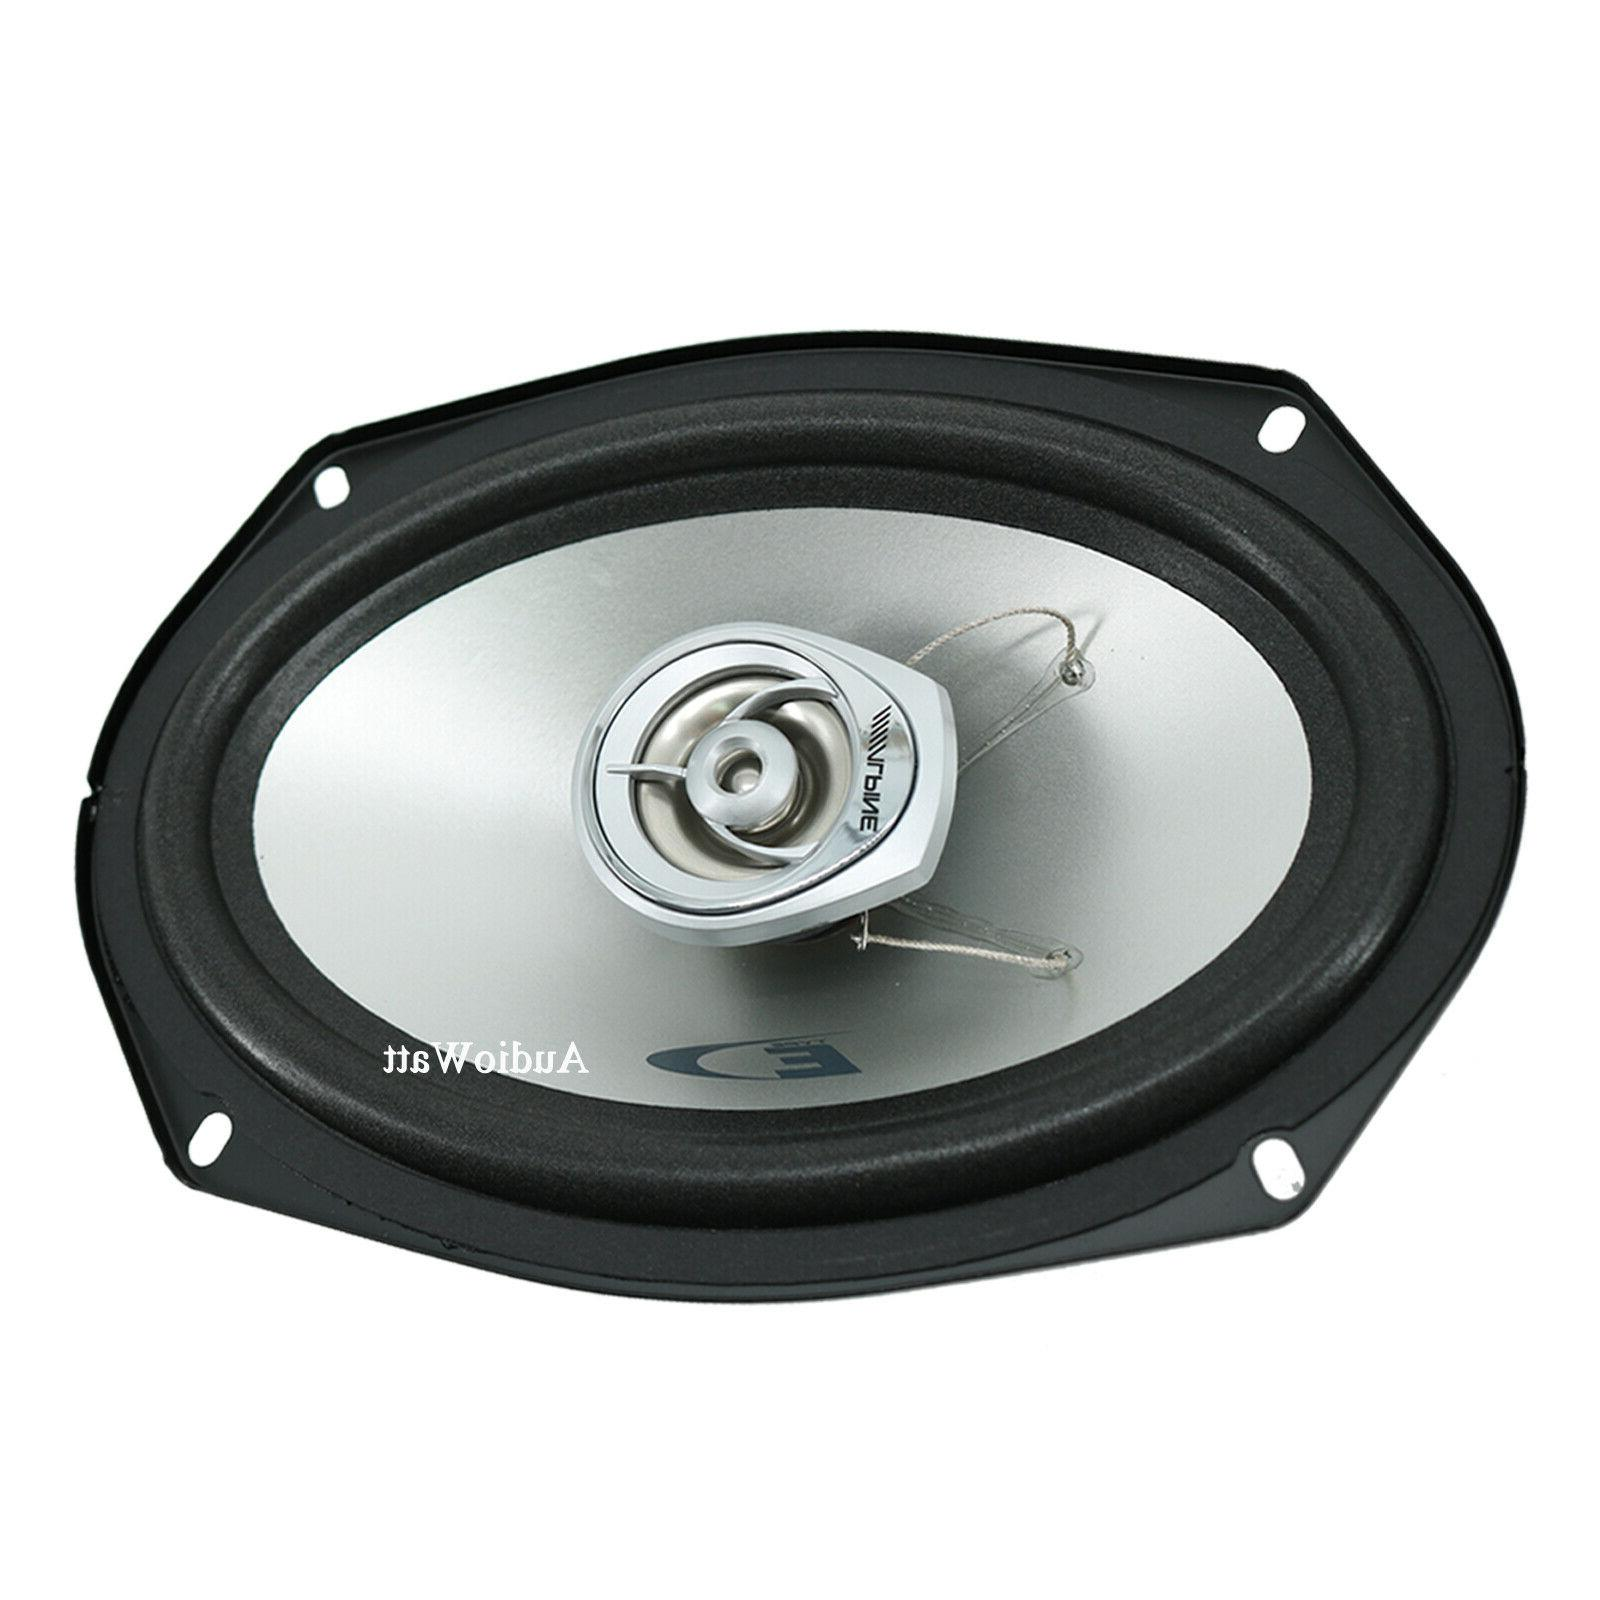 ALPINE SXE-6925S DOME TWEETER SPEAKERS WATTS 1 PAIR